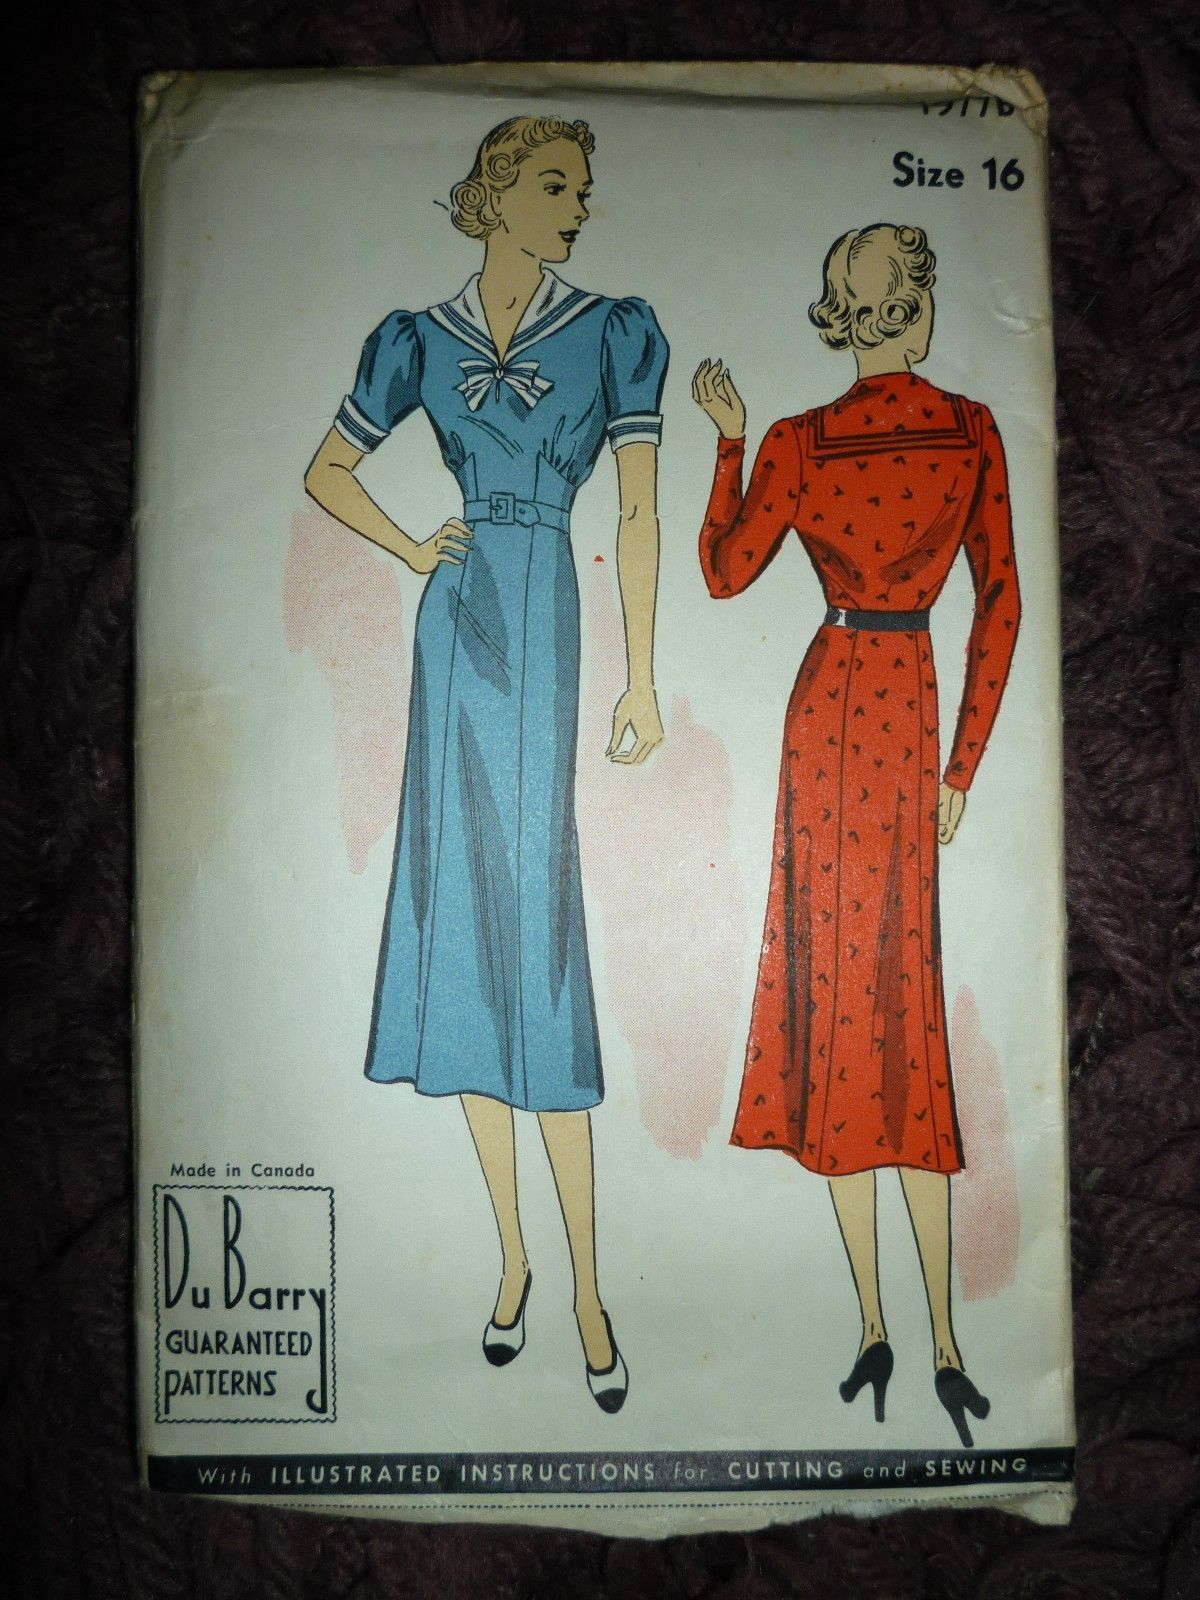 d71e74e020c ORIGINAL VINTAGE VERY RARE 1930 s DU BARRY DRESS SEWING PATTERN SIZE 16 BUST  34